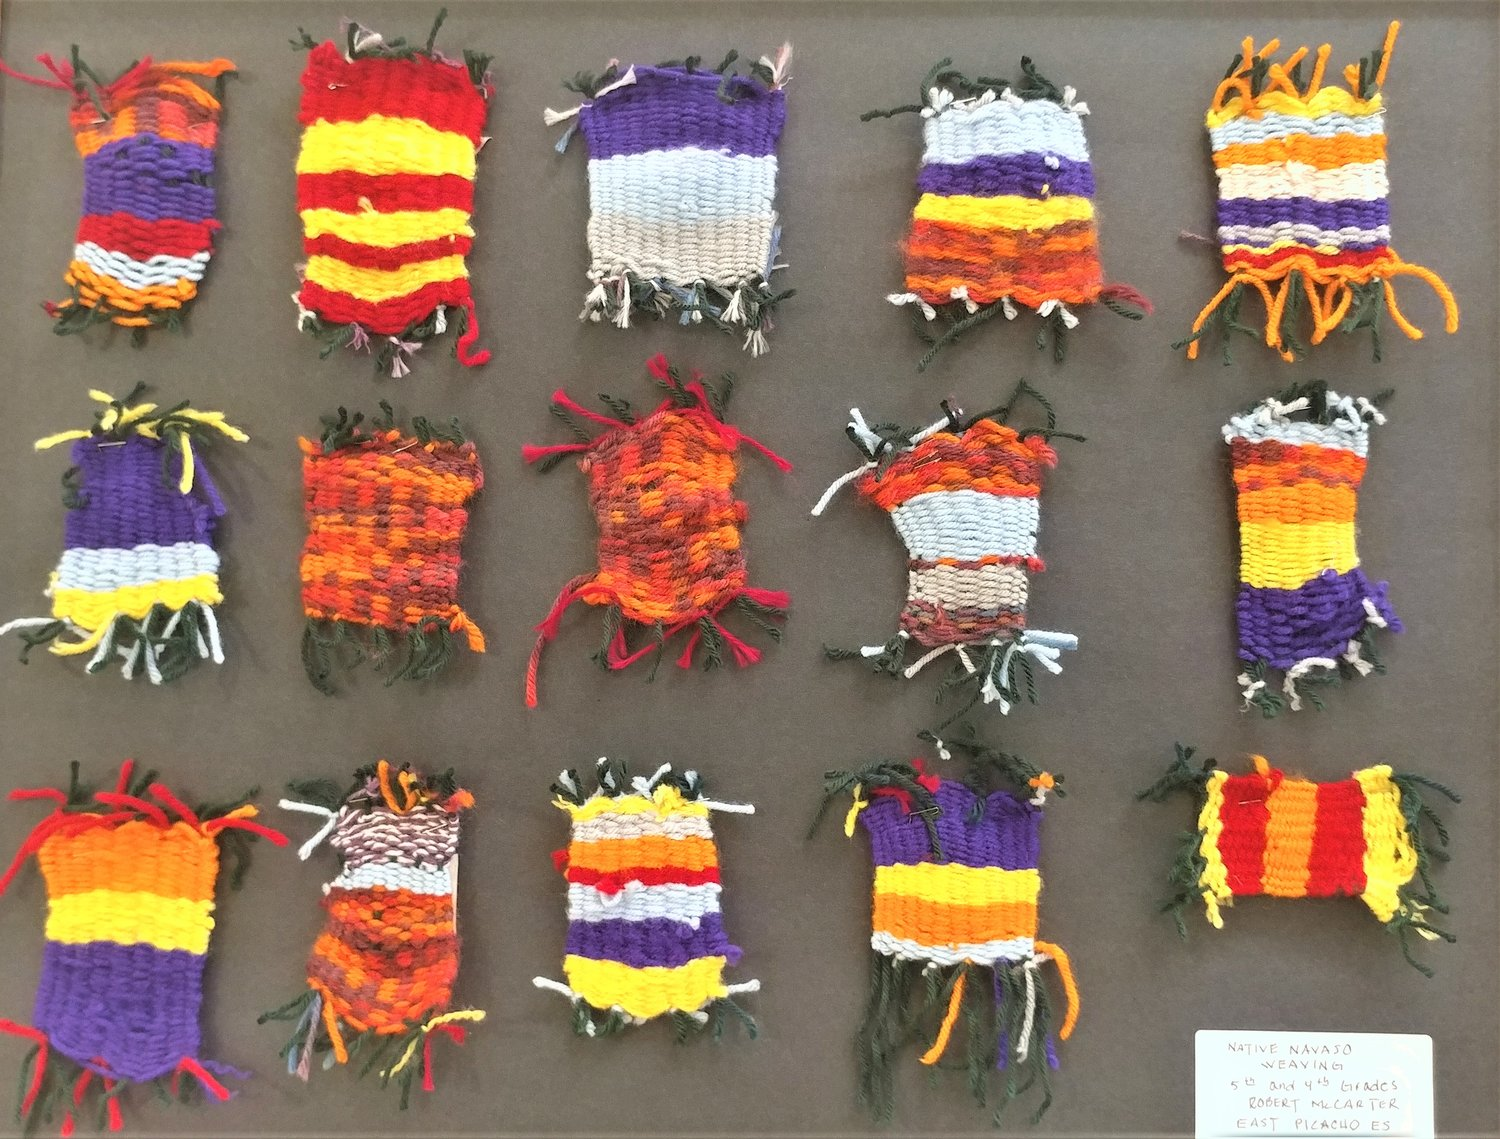 Native Navajo Weaving, by fifth and sixth graders at East Picacho Elementary School.